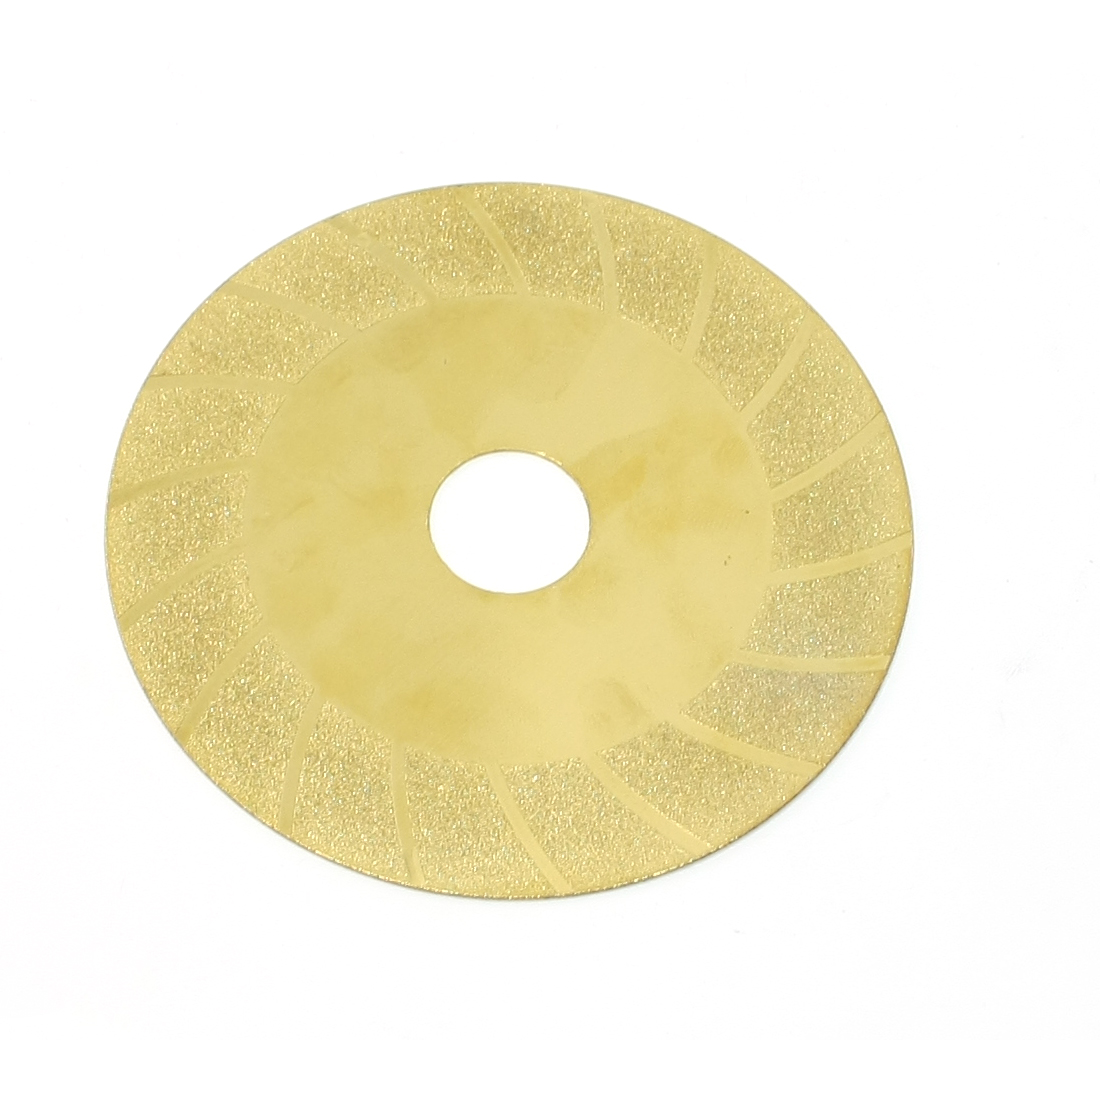 100mm x 20mm Grinding Tool Diamond Coated Cutting Disc Gold Tone